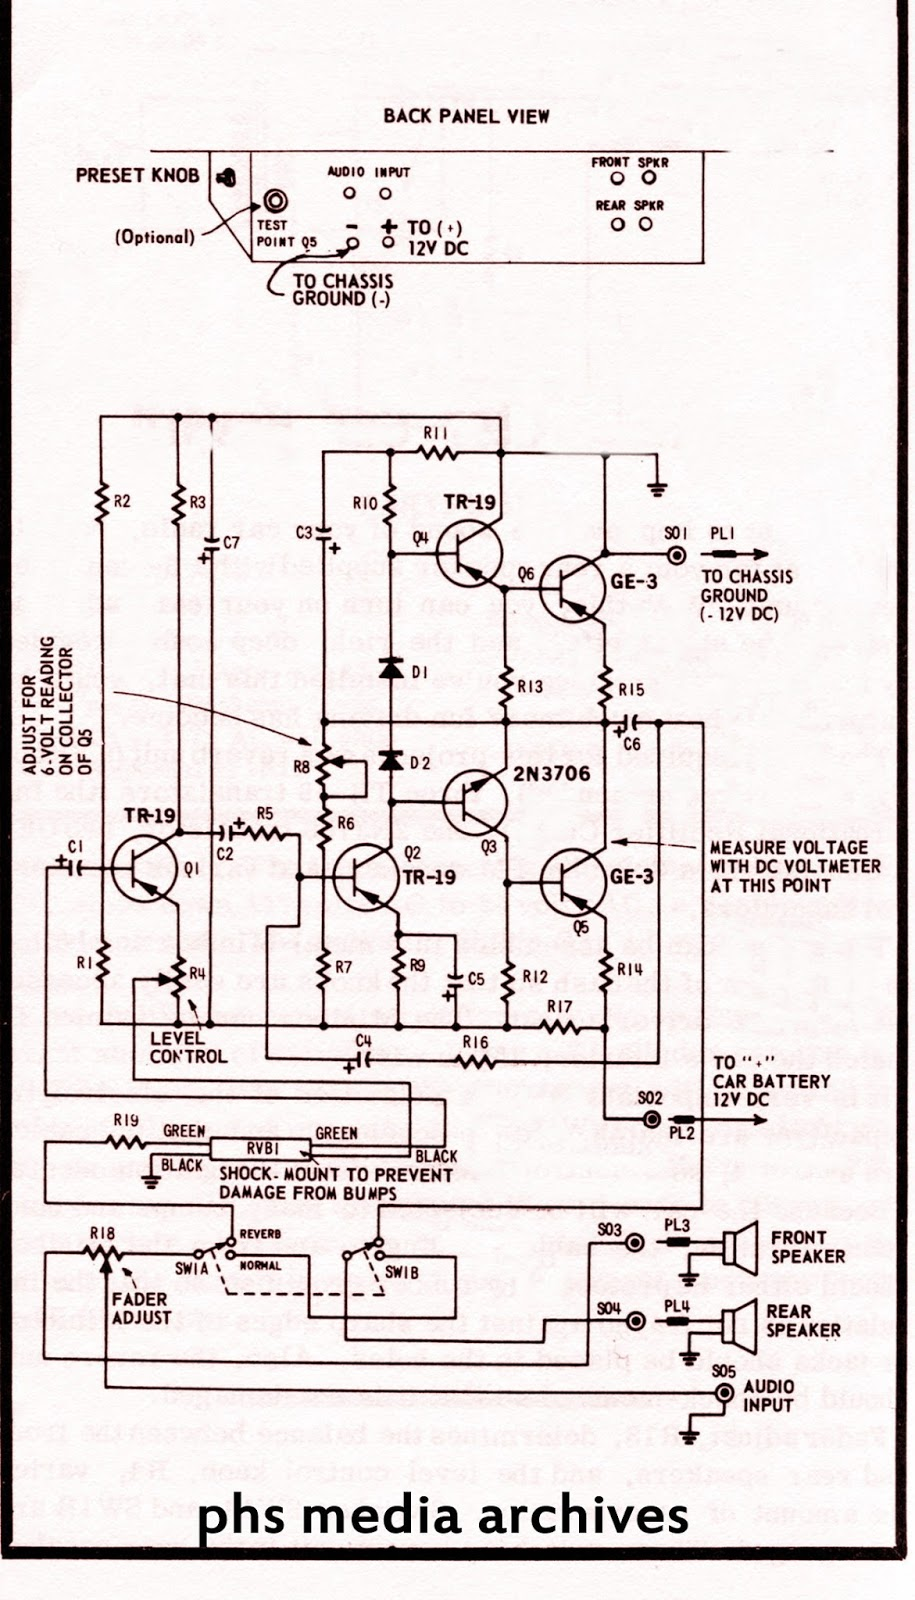 dm007 quadcopter wiring diagram explorer schematic diagram power window circuit diagram of 1966 oldsmobile 33000 series [ 915 x 1600 Pixel ]